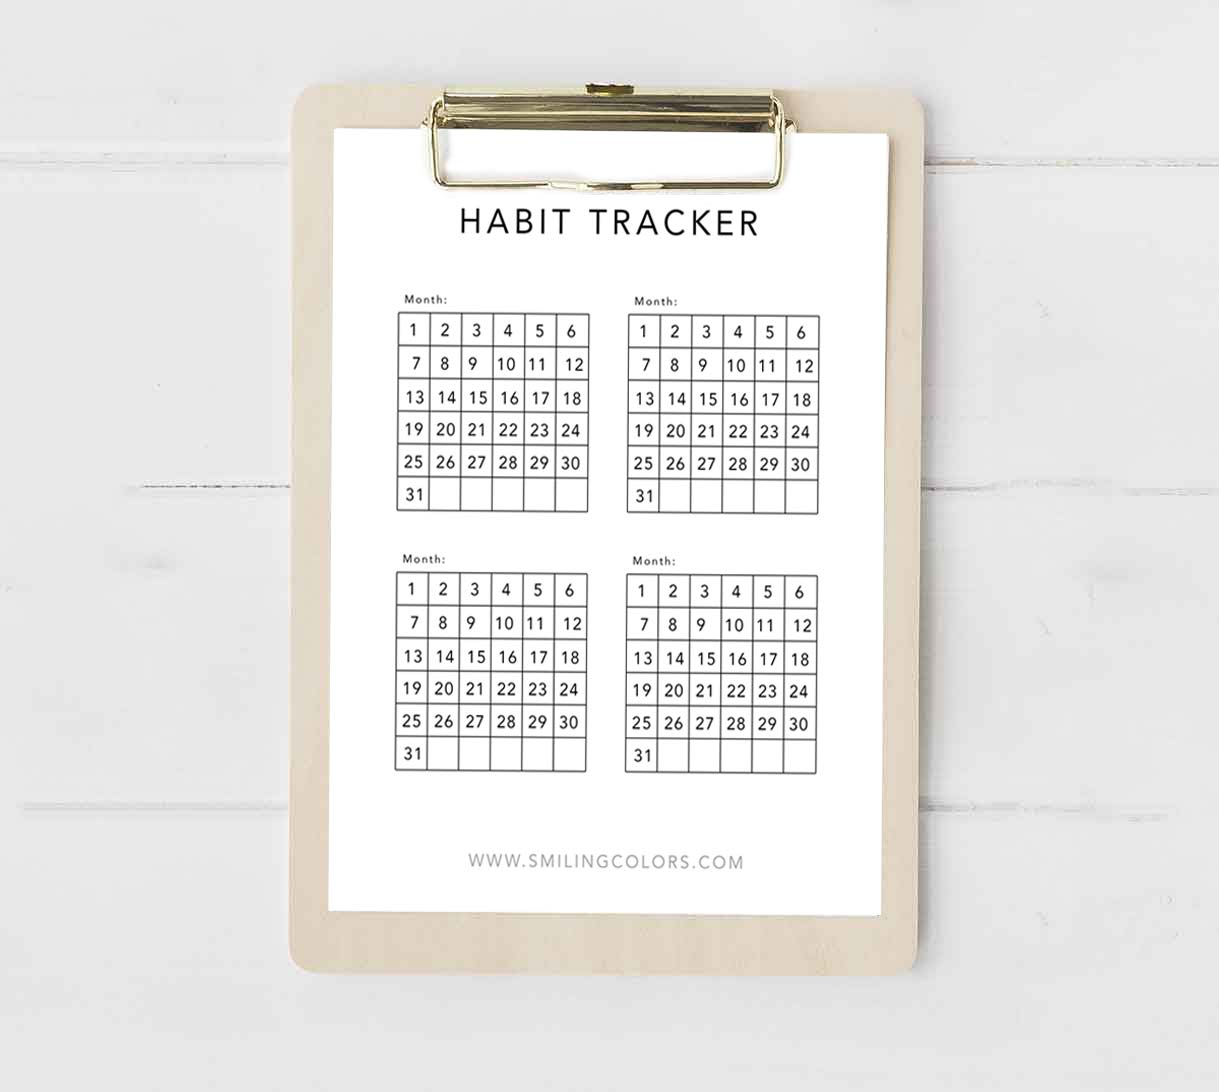 image about Habit Tracker Printable Free called Every month routine tracker printable - Smitha Katti